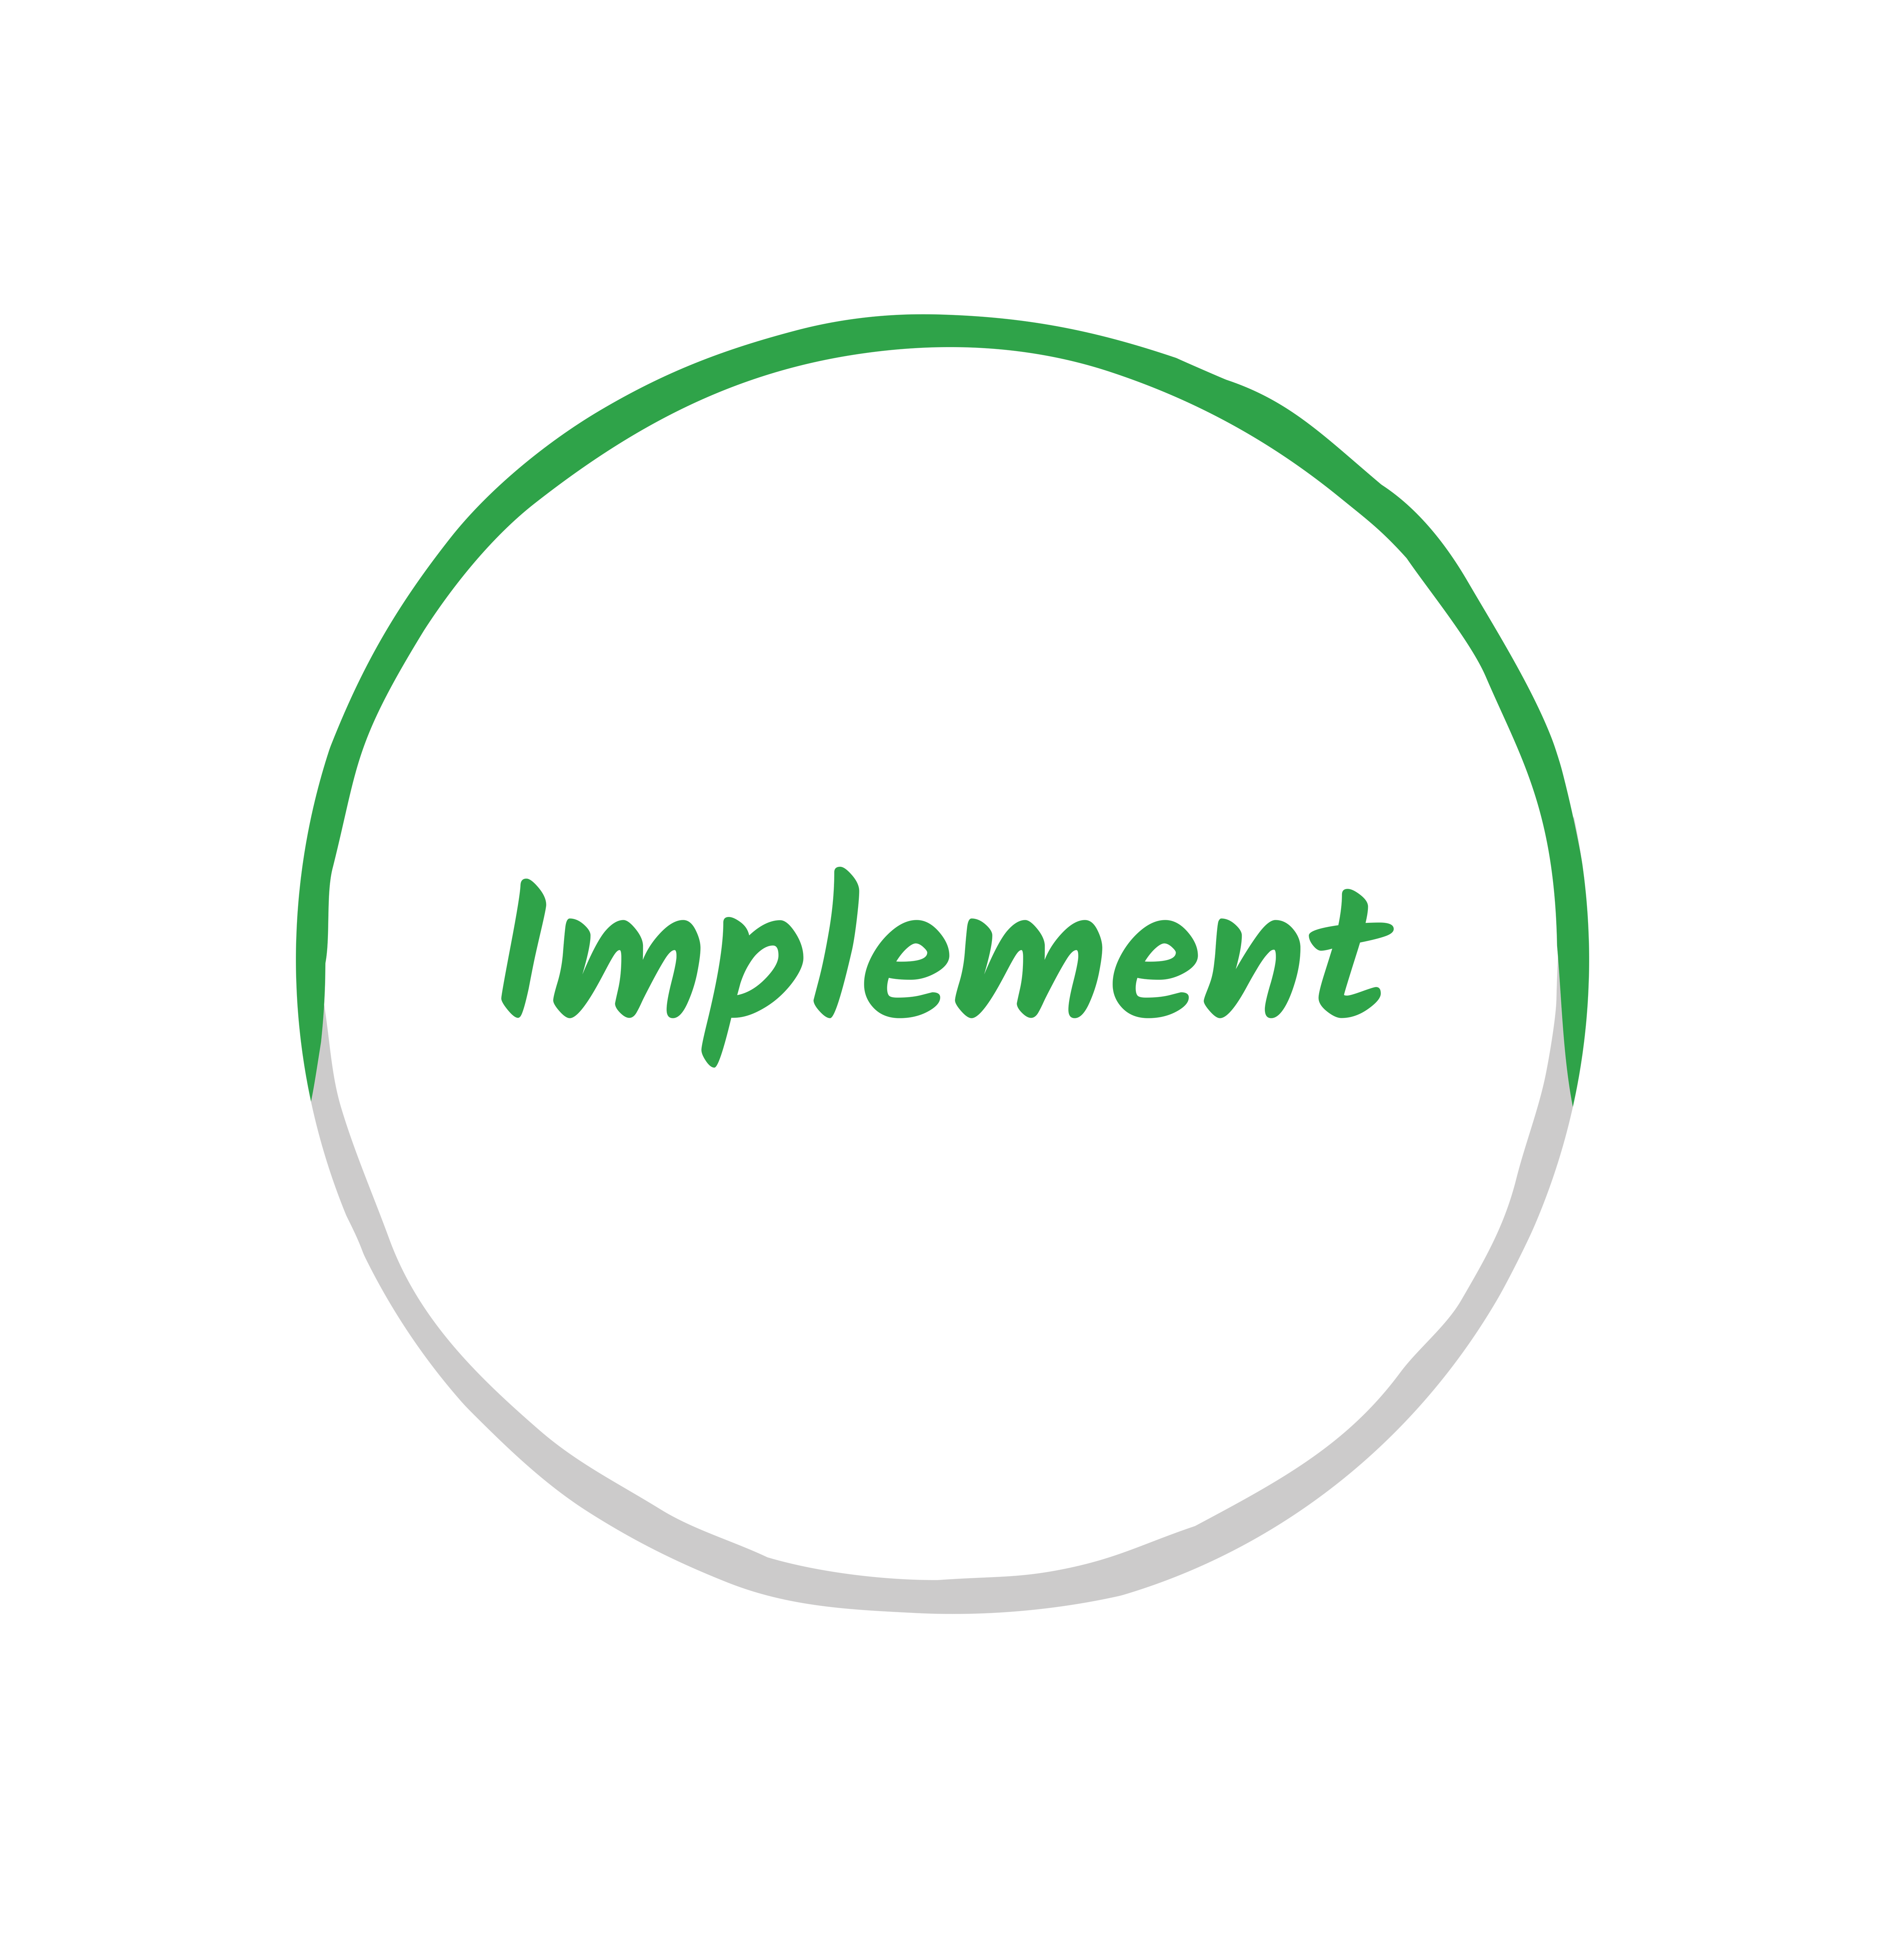 Implement stage for Implementation